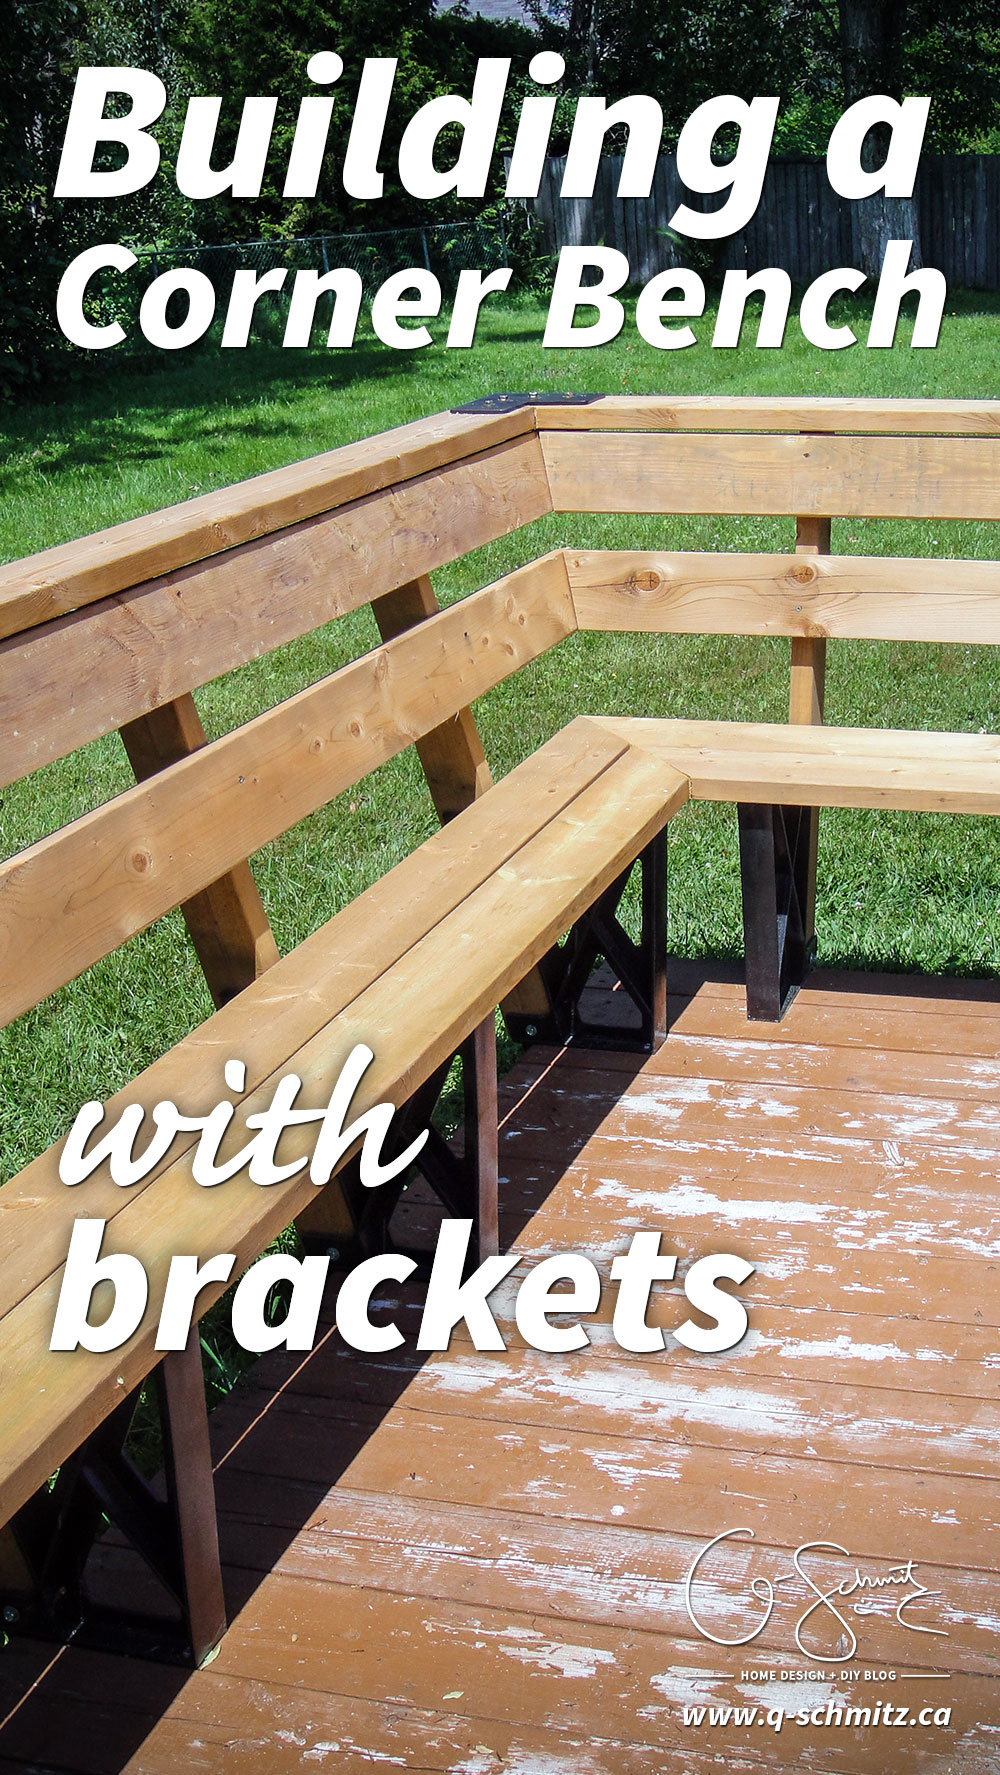 Are you ready to tackle an easy DIY project this summer? Building a corner bench with brackets is a great way to add more seating space to your deck, and these tips will help you avoid any mistakes along the way!